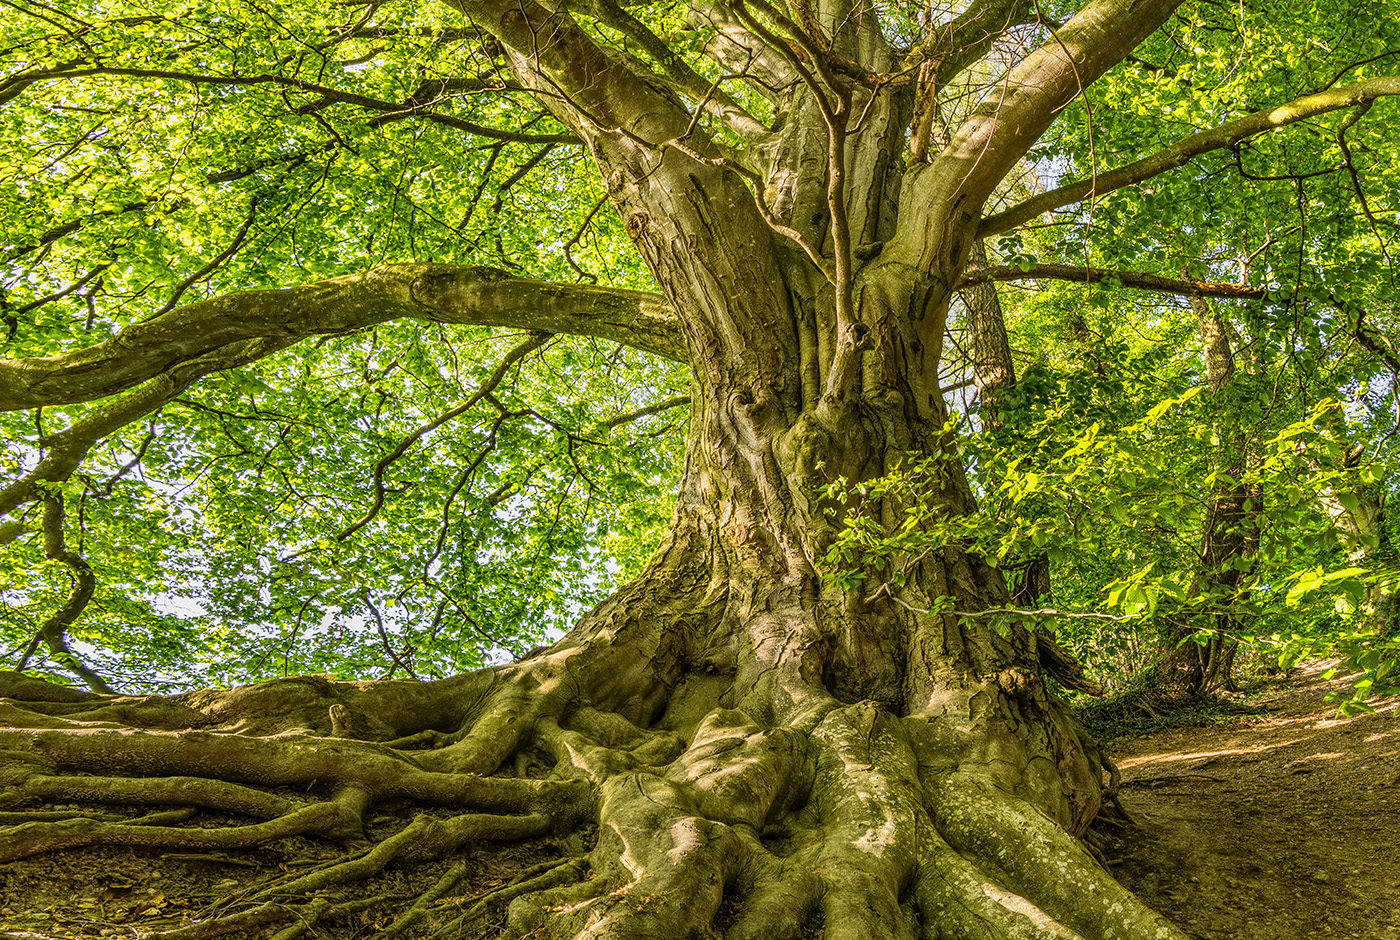 Tree root by Felix Mittermeier on Pexels